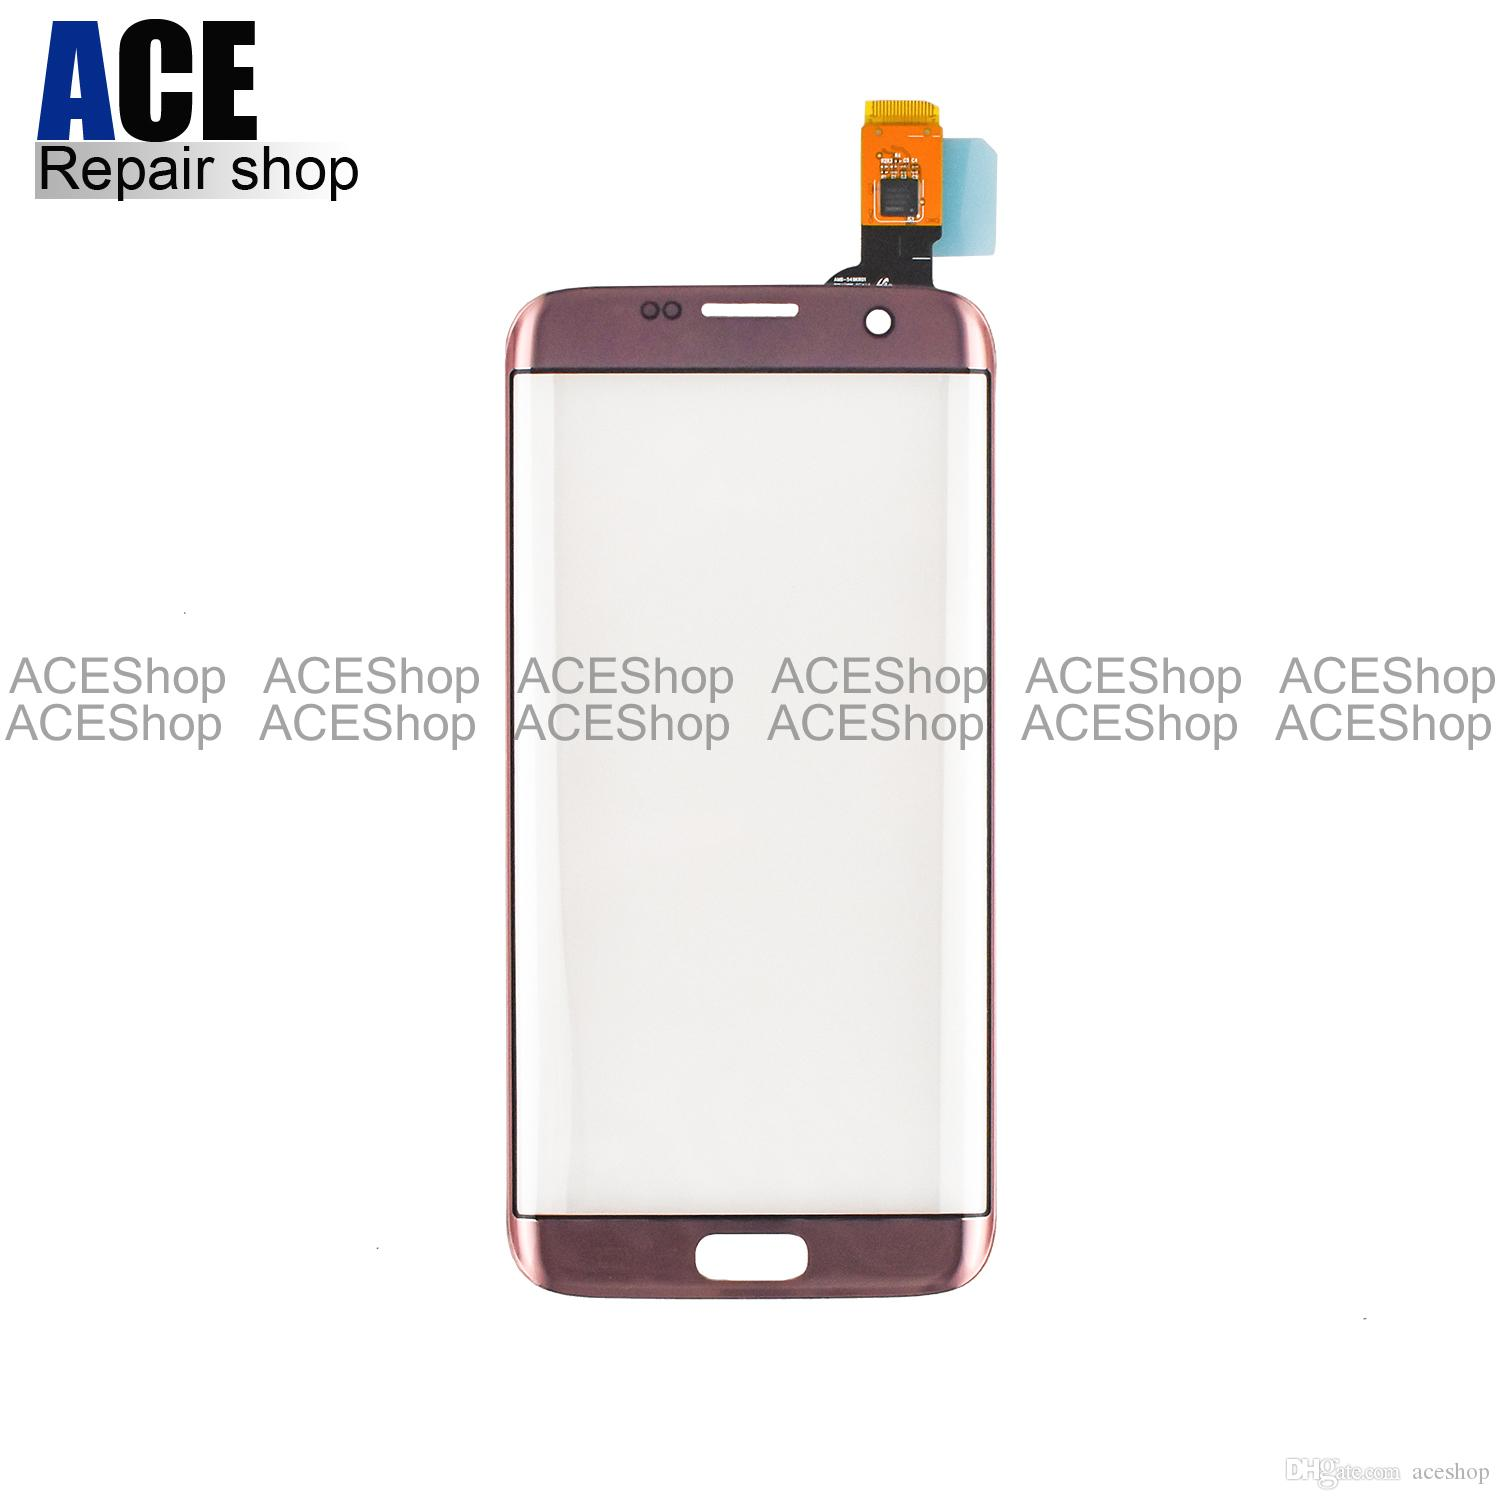 2018 Ace Original Front Glass Touch Panel Screen Digitizer Replacement Part For Samsung Galaxy S7 Edge G935 G935a G935f Free Dhl From Aceshop